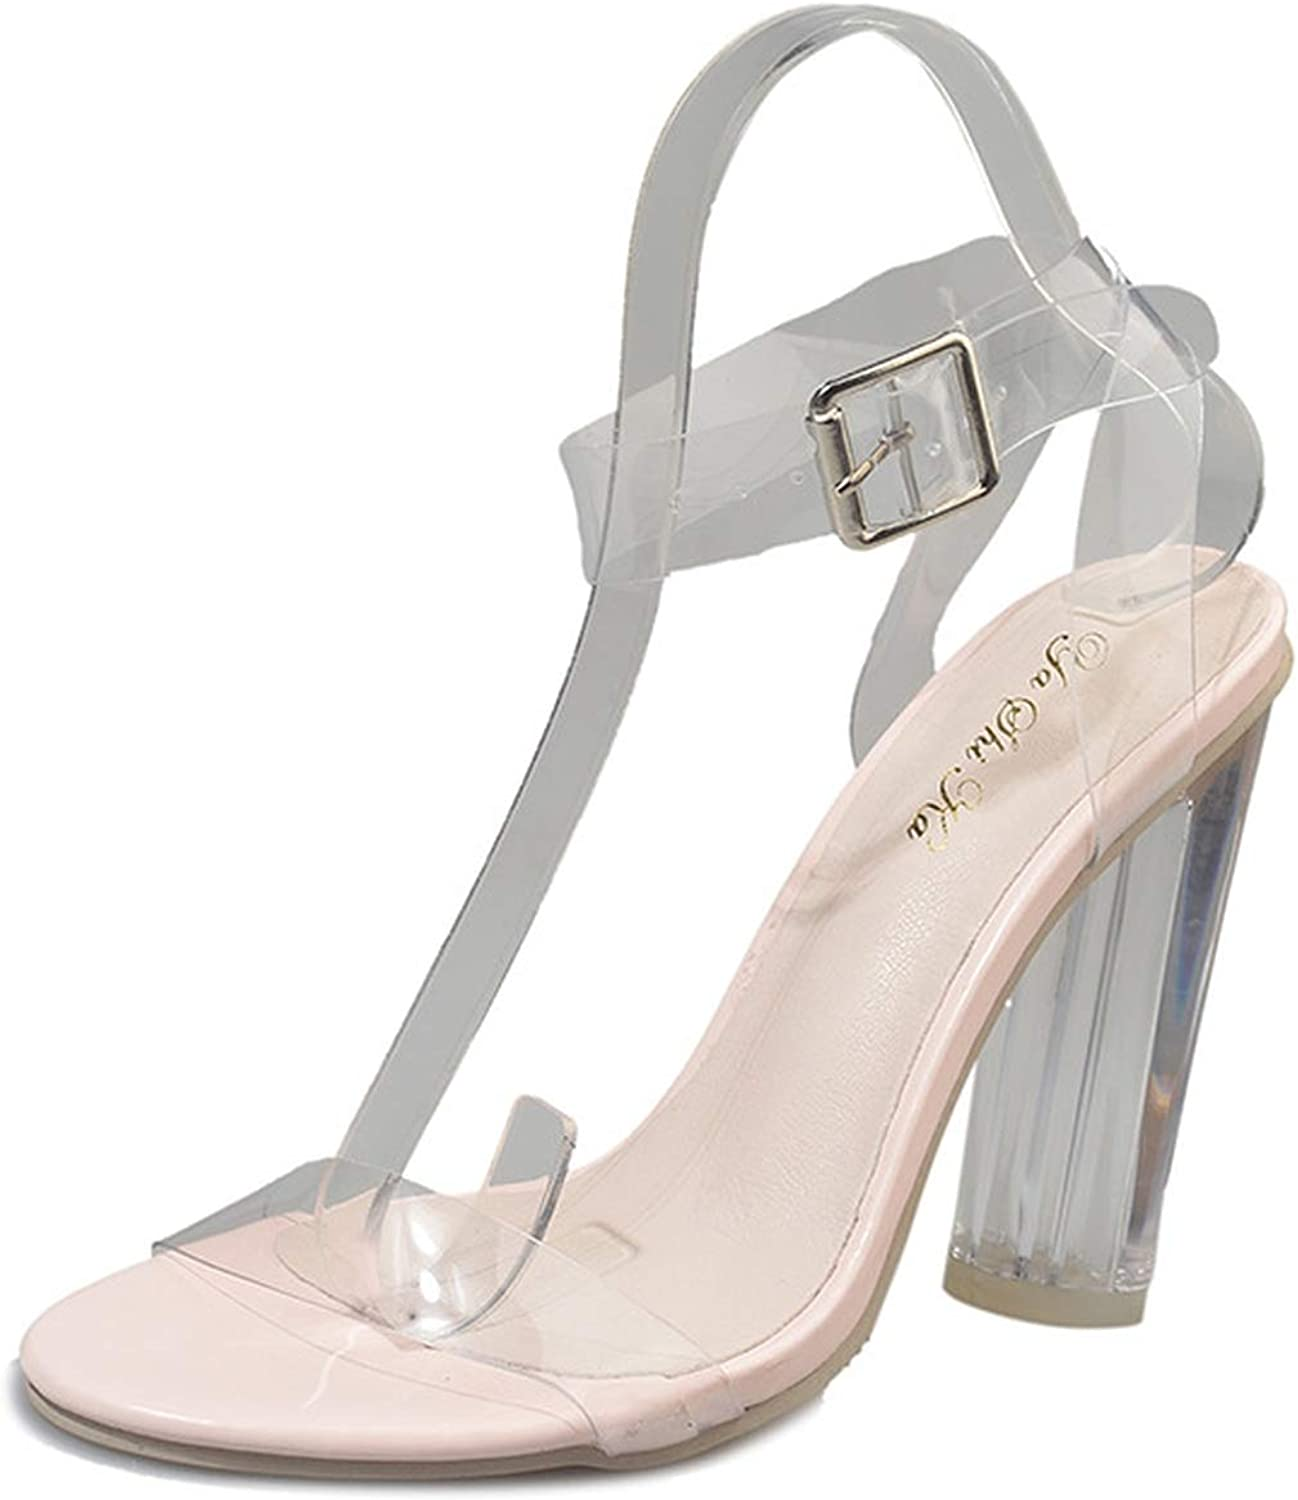 Sweet But Psycho-HEELS Summer shoes Women PVC Transparent Sandals Thick High Heel Crystal Sexy Women's shoes Sandals Buckle Pumps